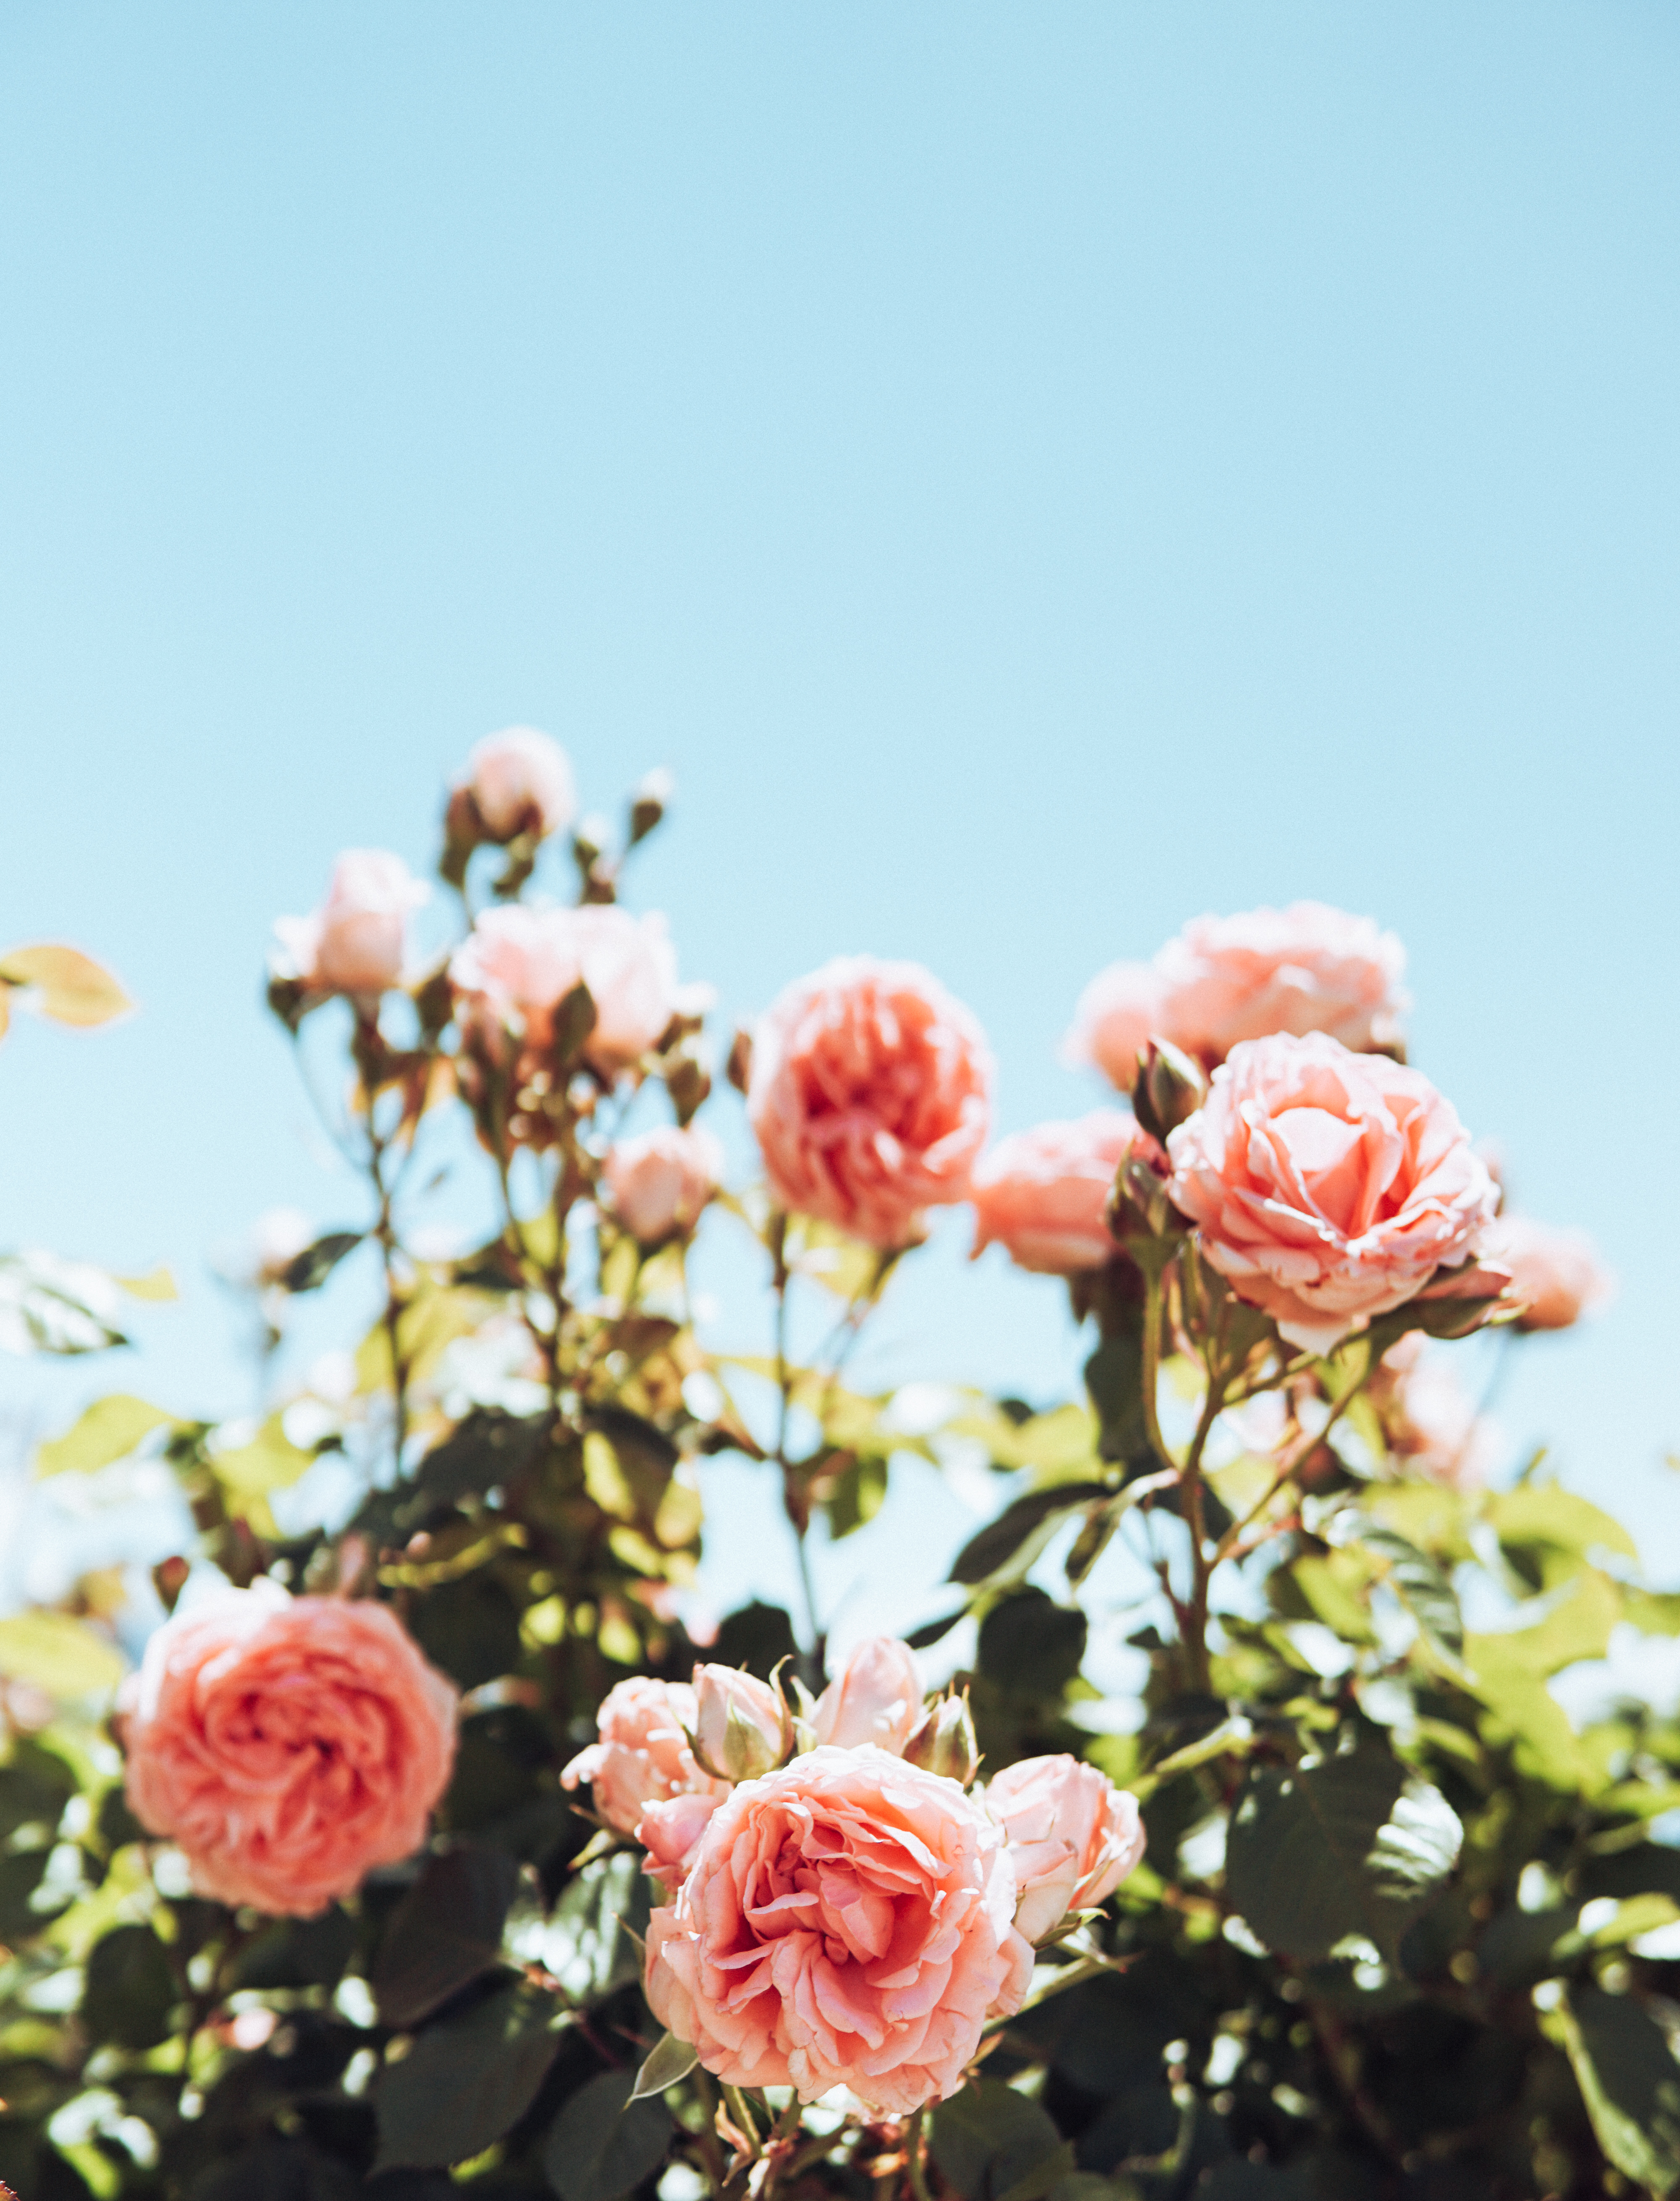 Photo of Pink and White Flowers